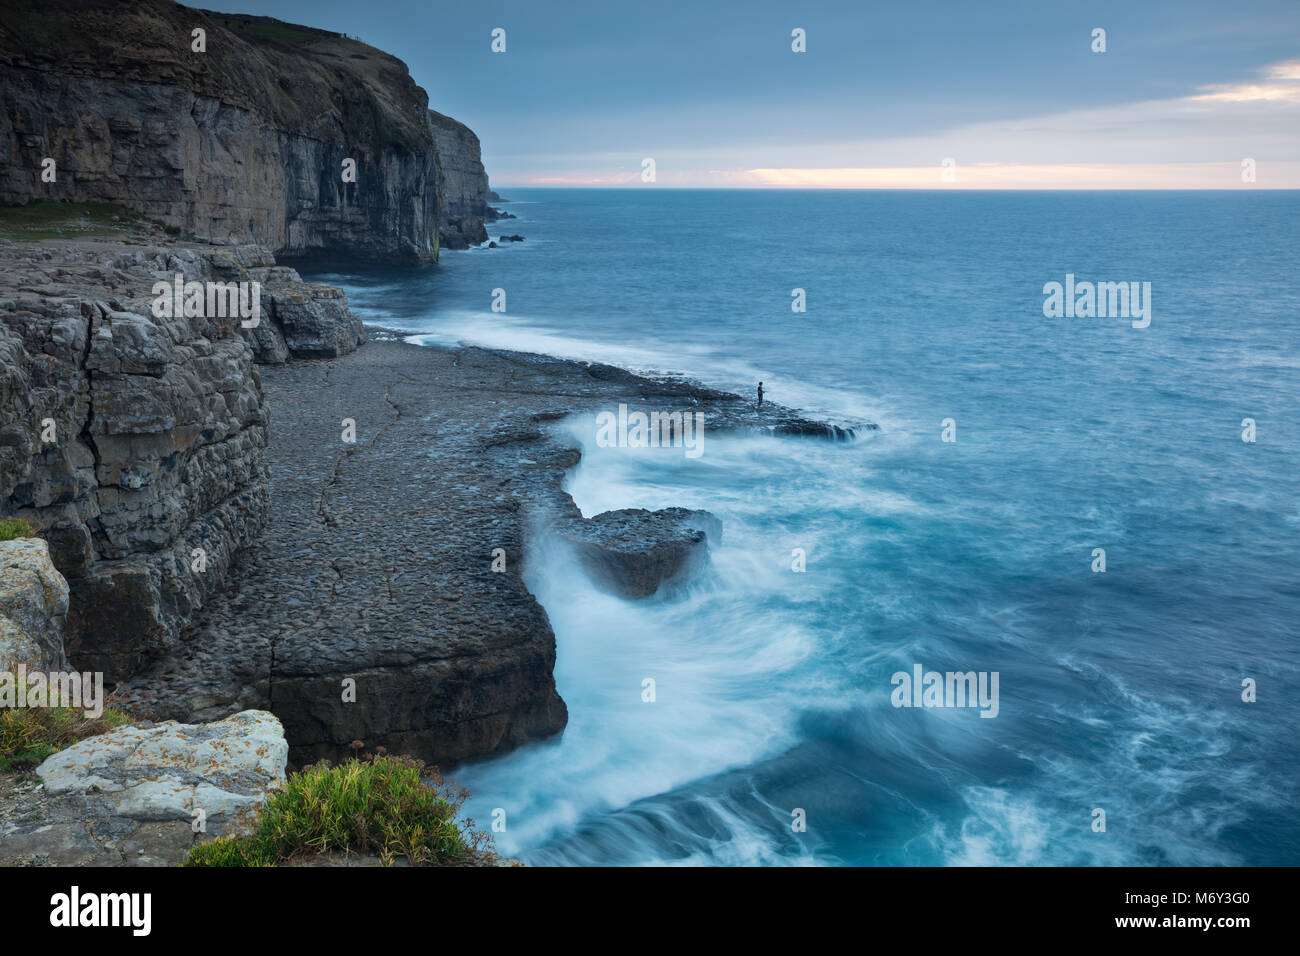 A solitary angler on Dancing Ledge at dawn, Jurassic Coast, Dorset, England, UK - Stock Image